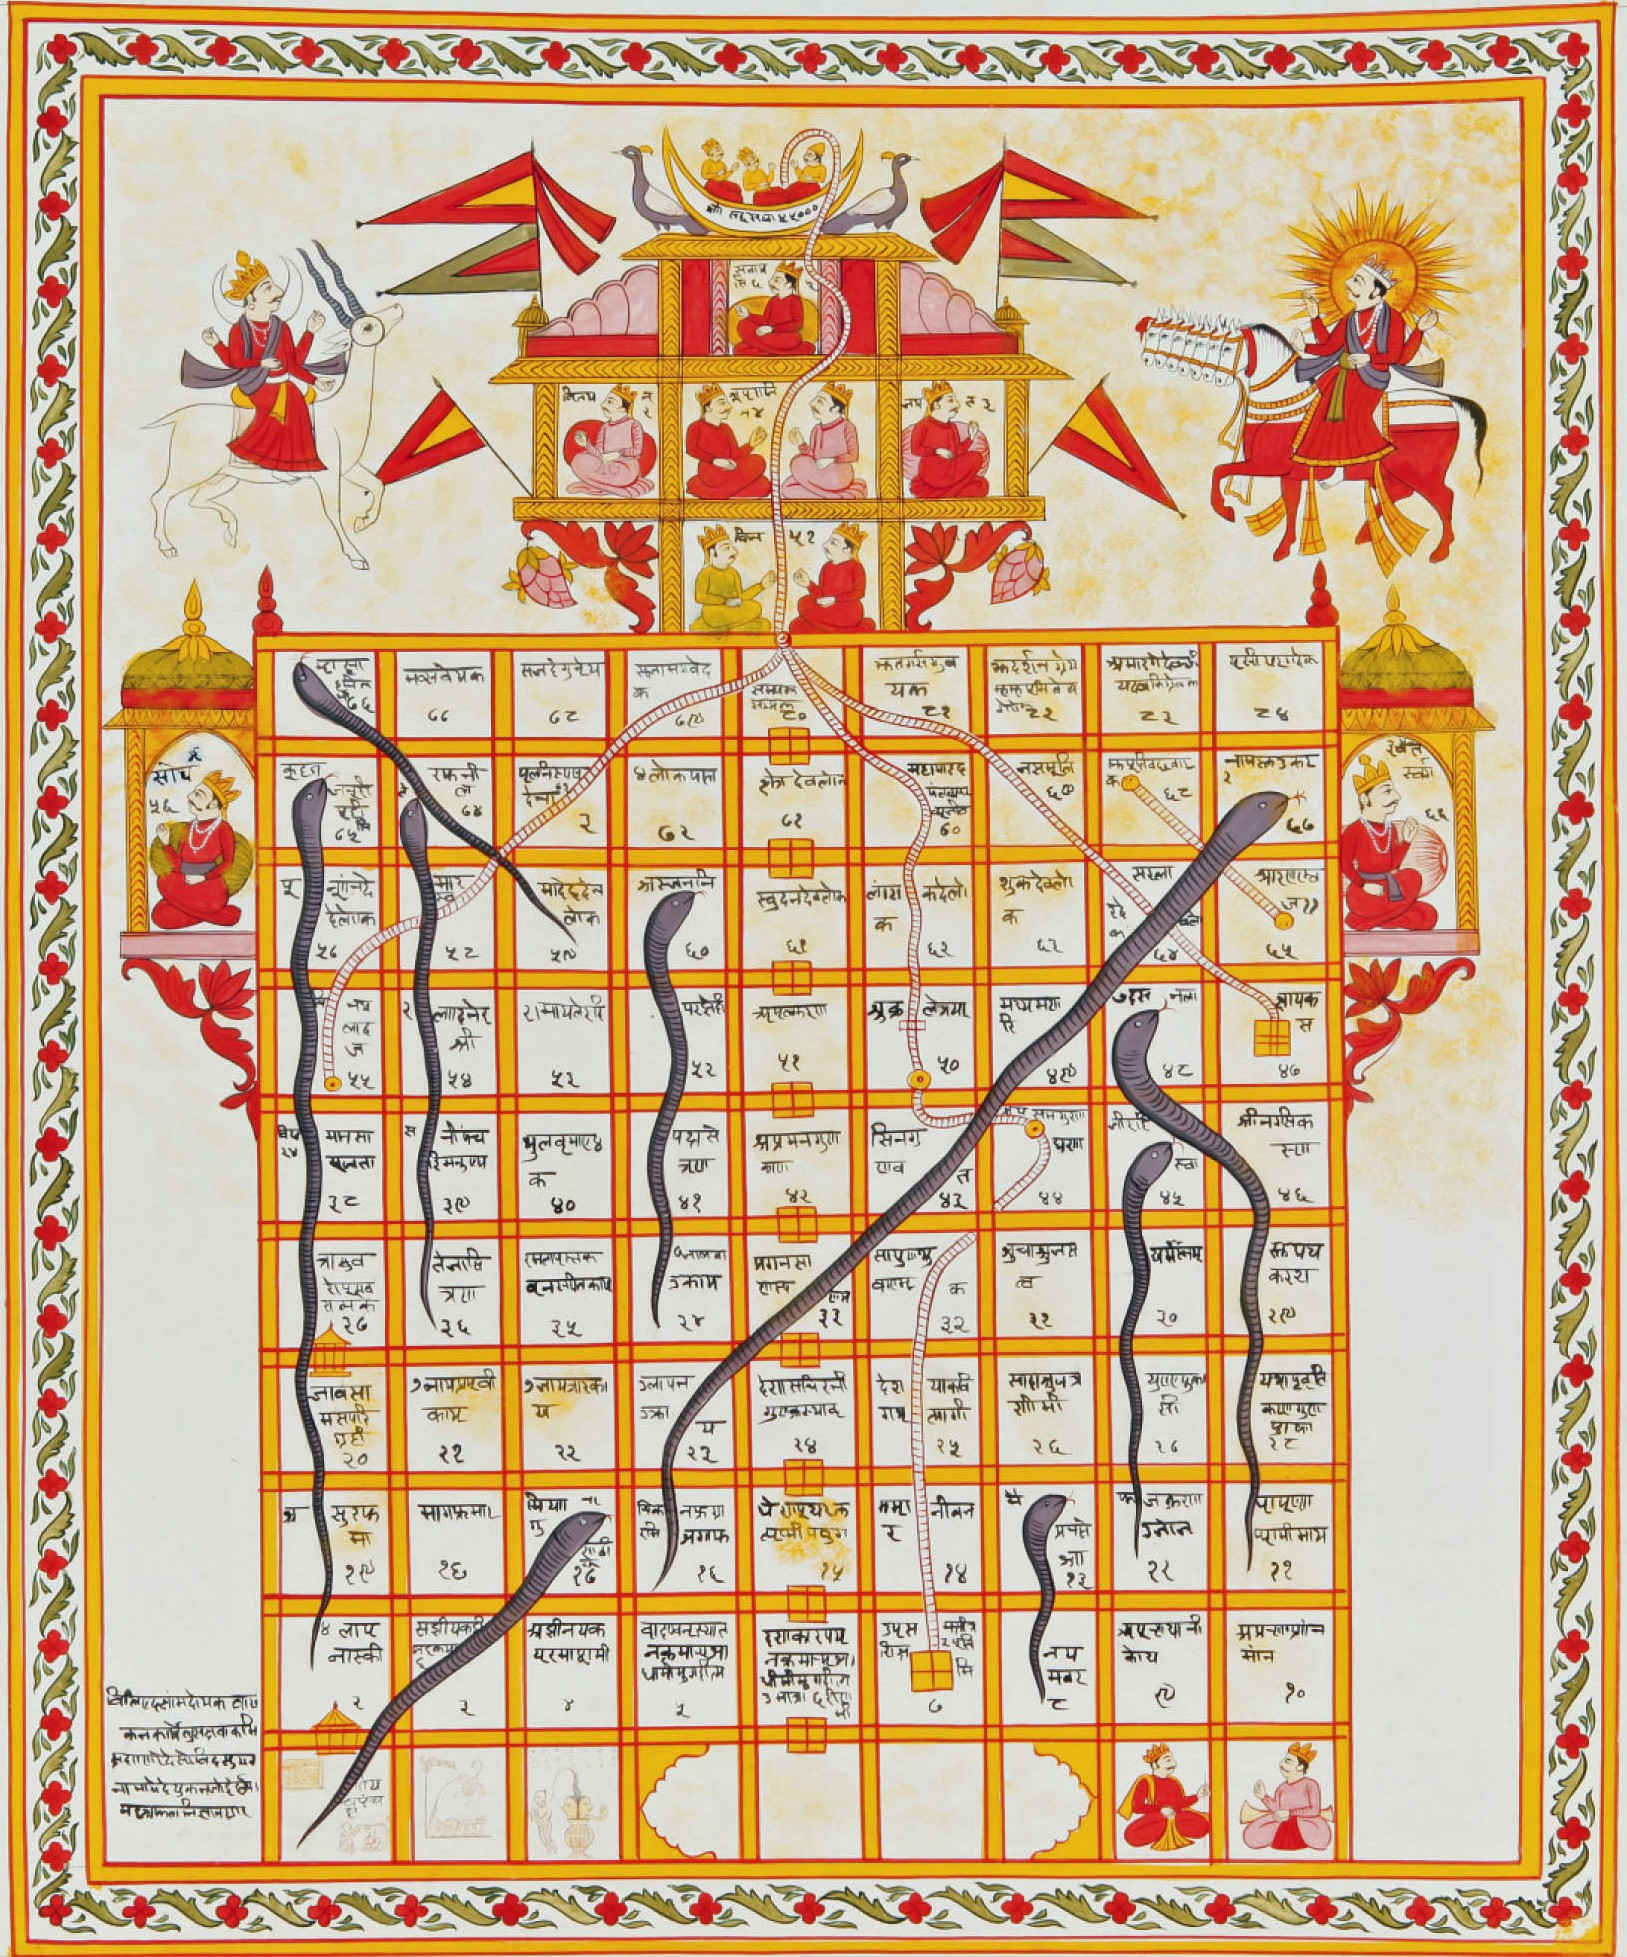 Snakes Is The Direction Game Like Wormies The Lines Are: The Timelessness Of Snakes And Ladders